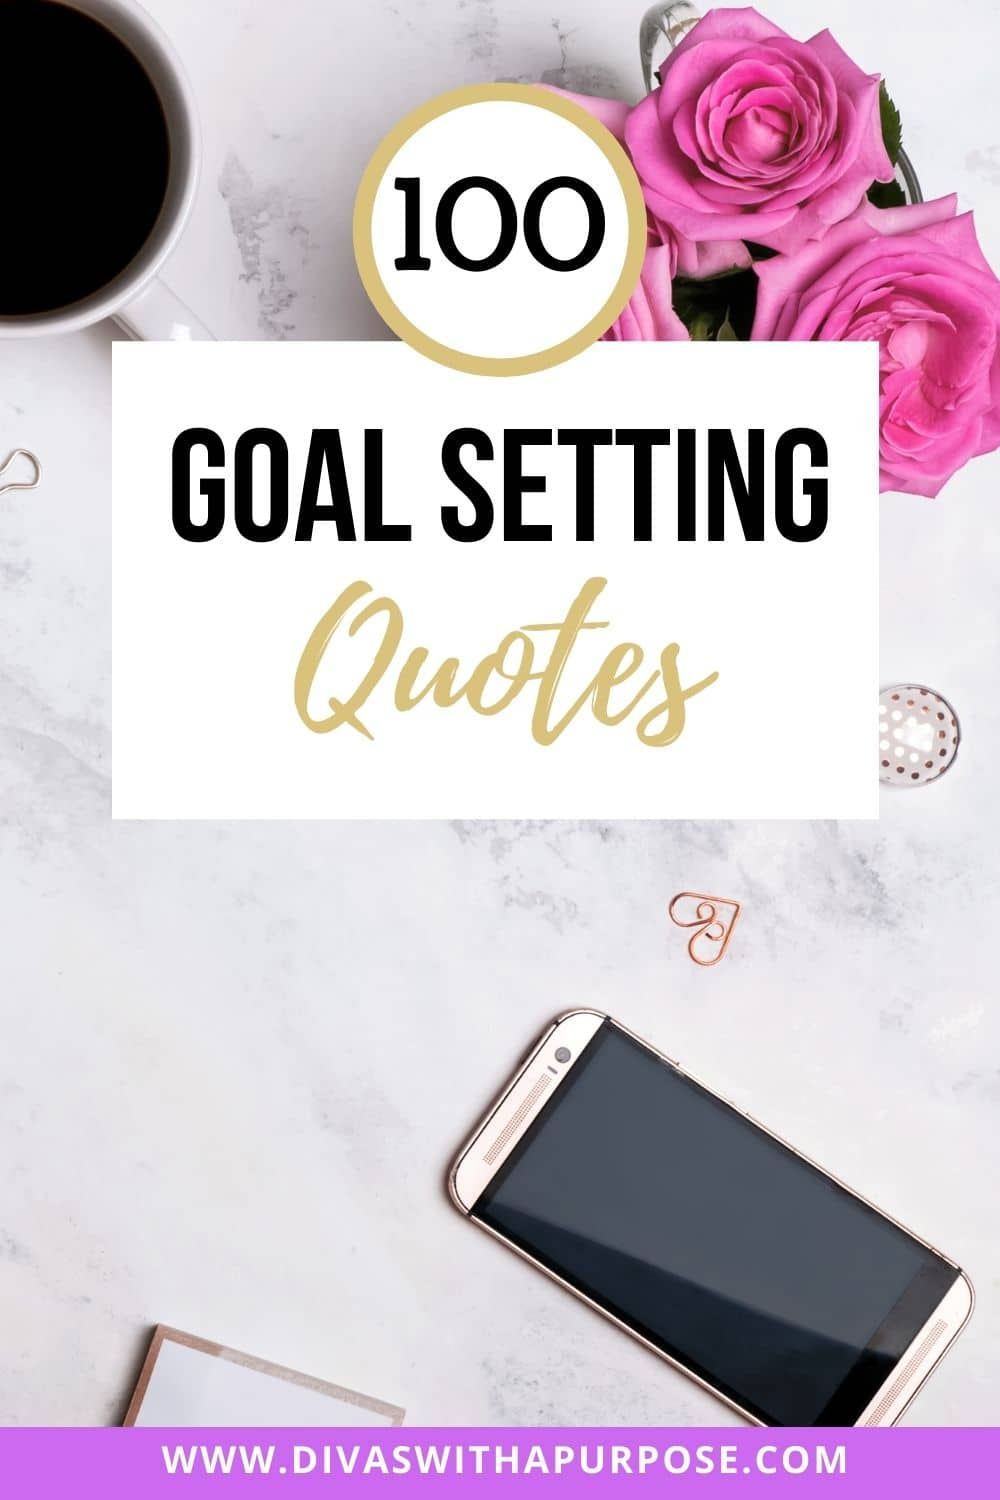 ollection of goal setting quotes is to inspire, motivate and encourage you along your goal-setting journey. #goalsetting #quotes